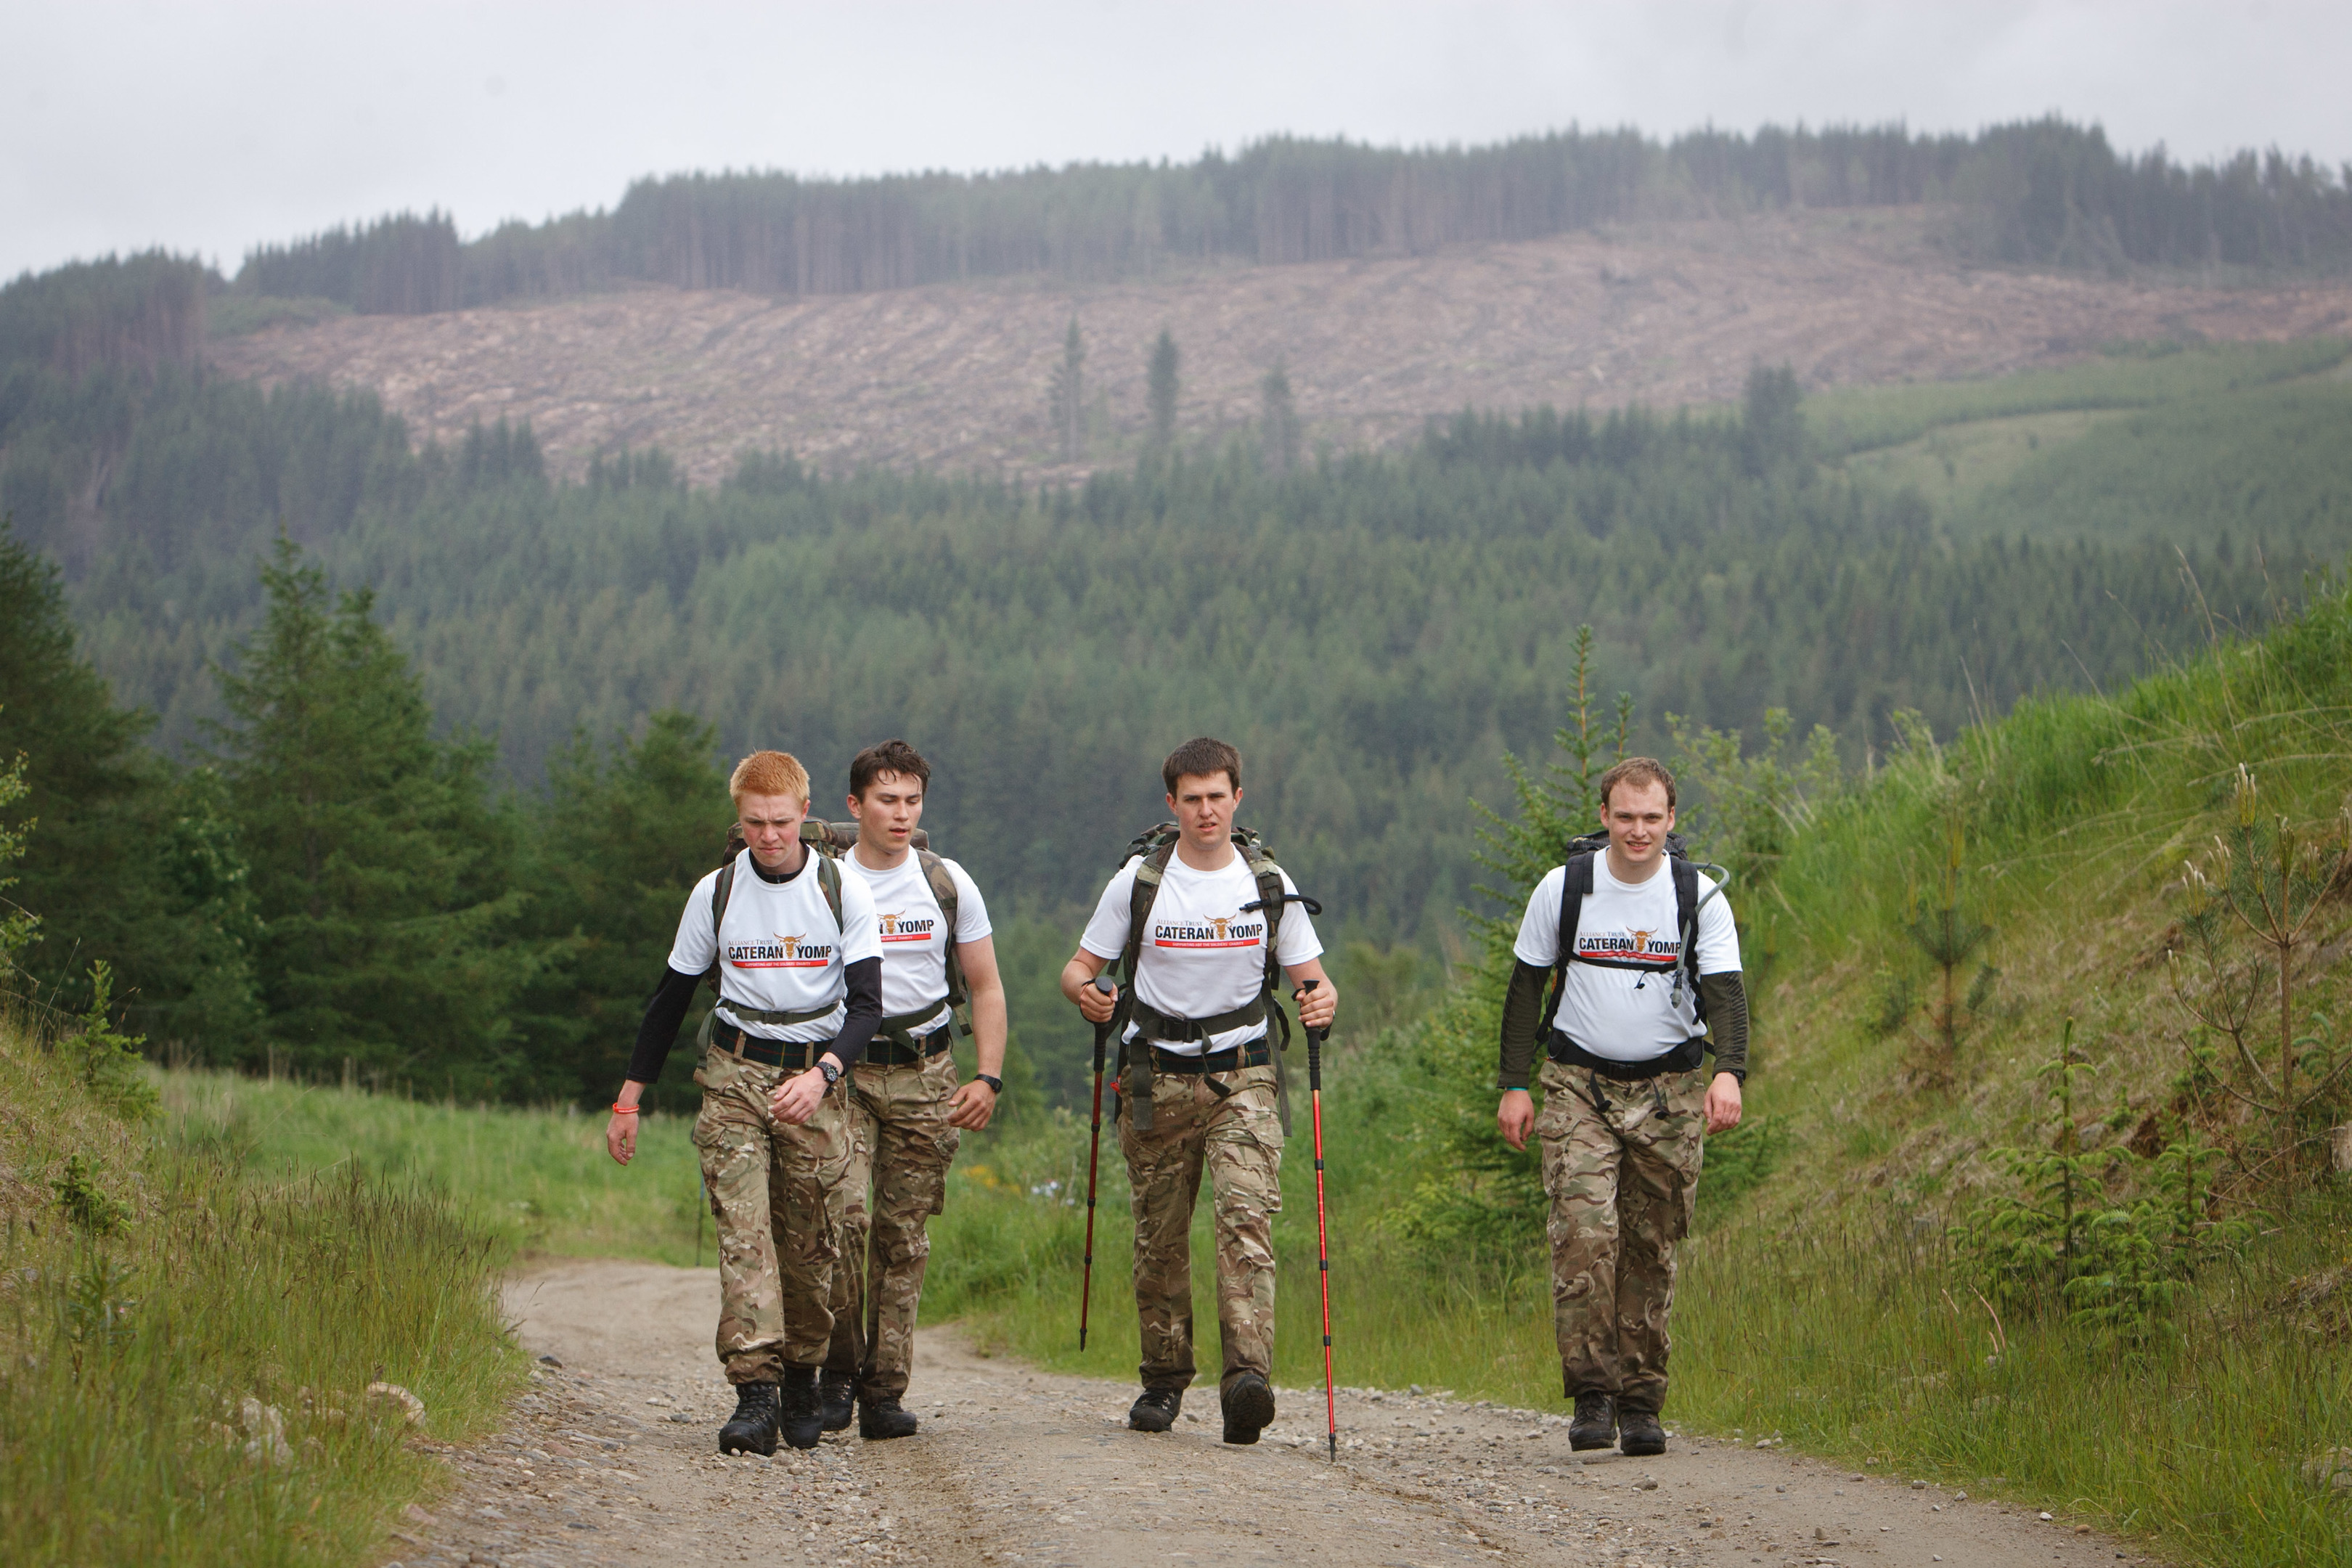 Intrepid yompers on the gruelling route.